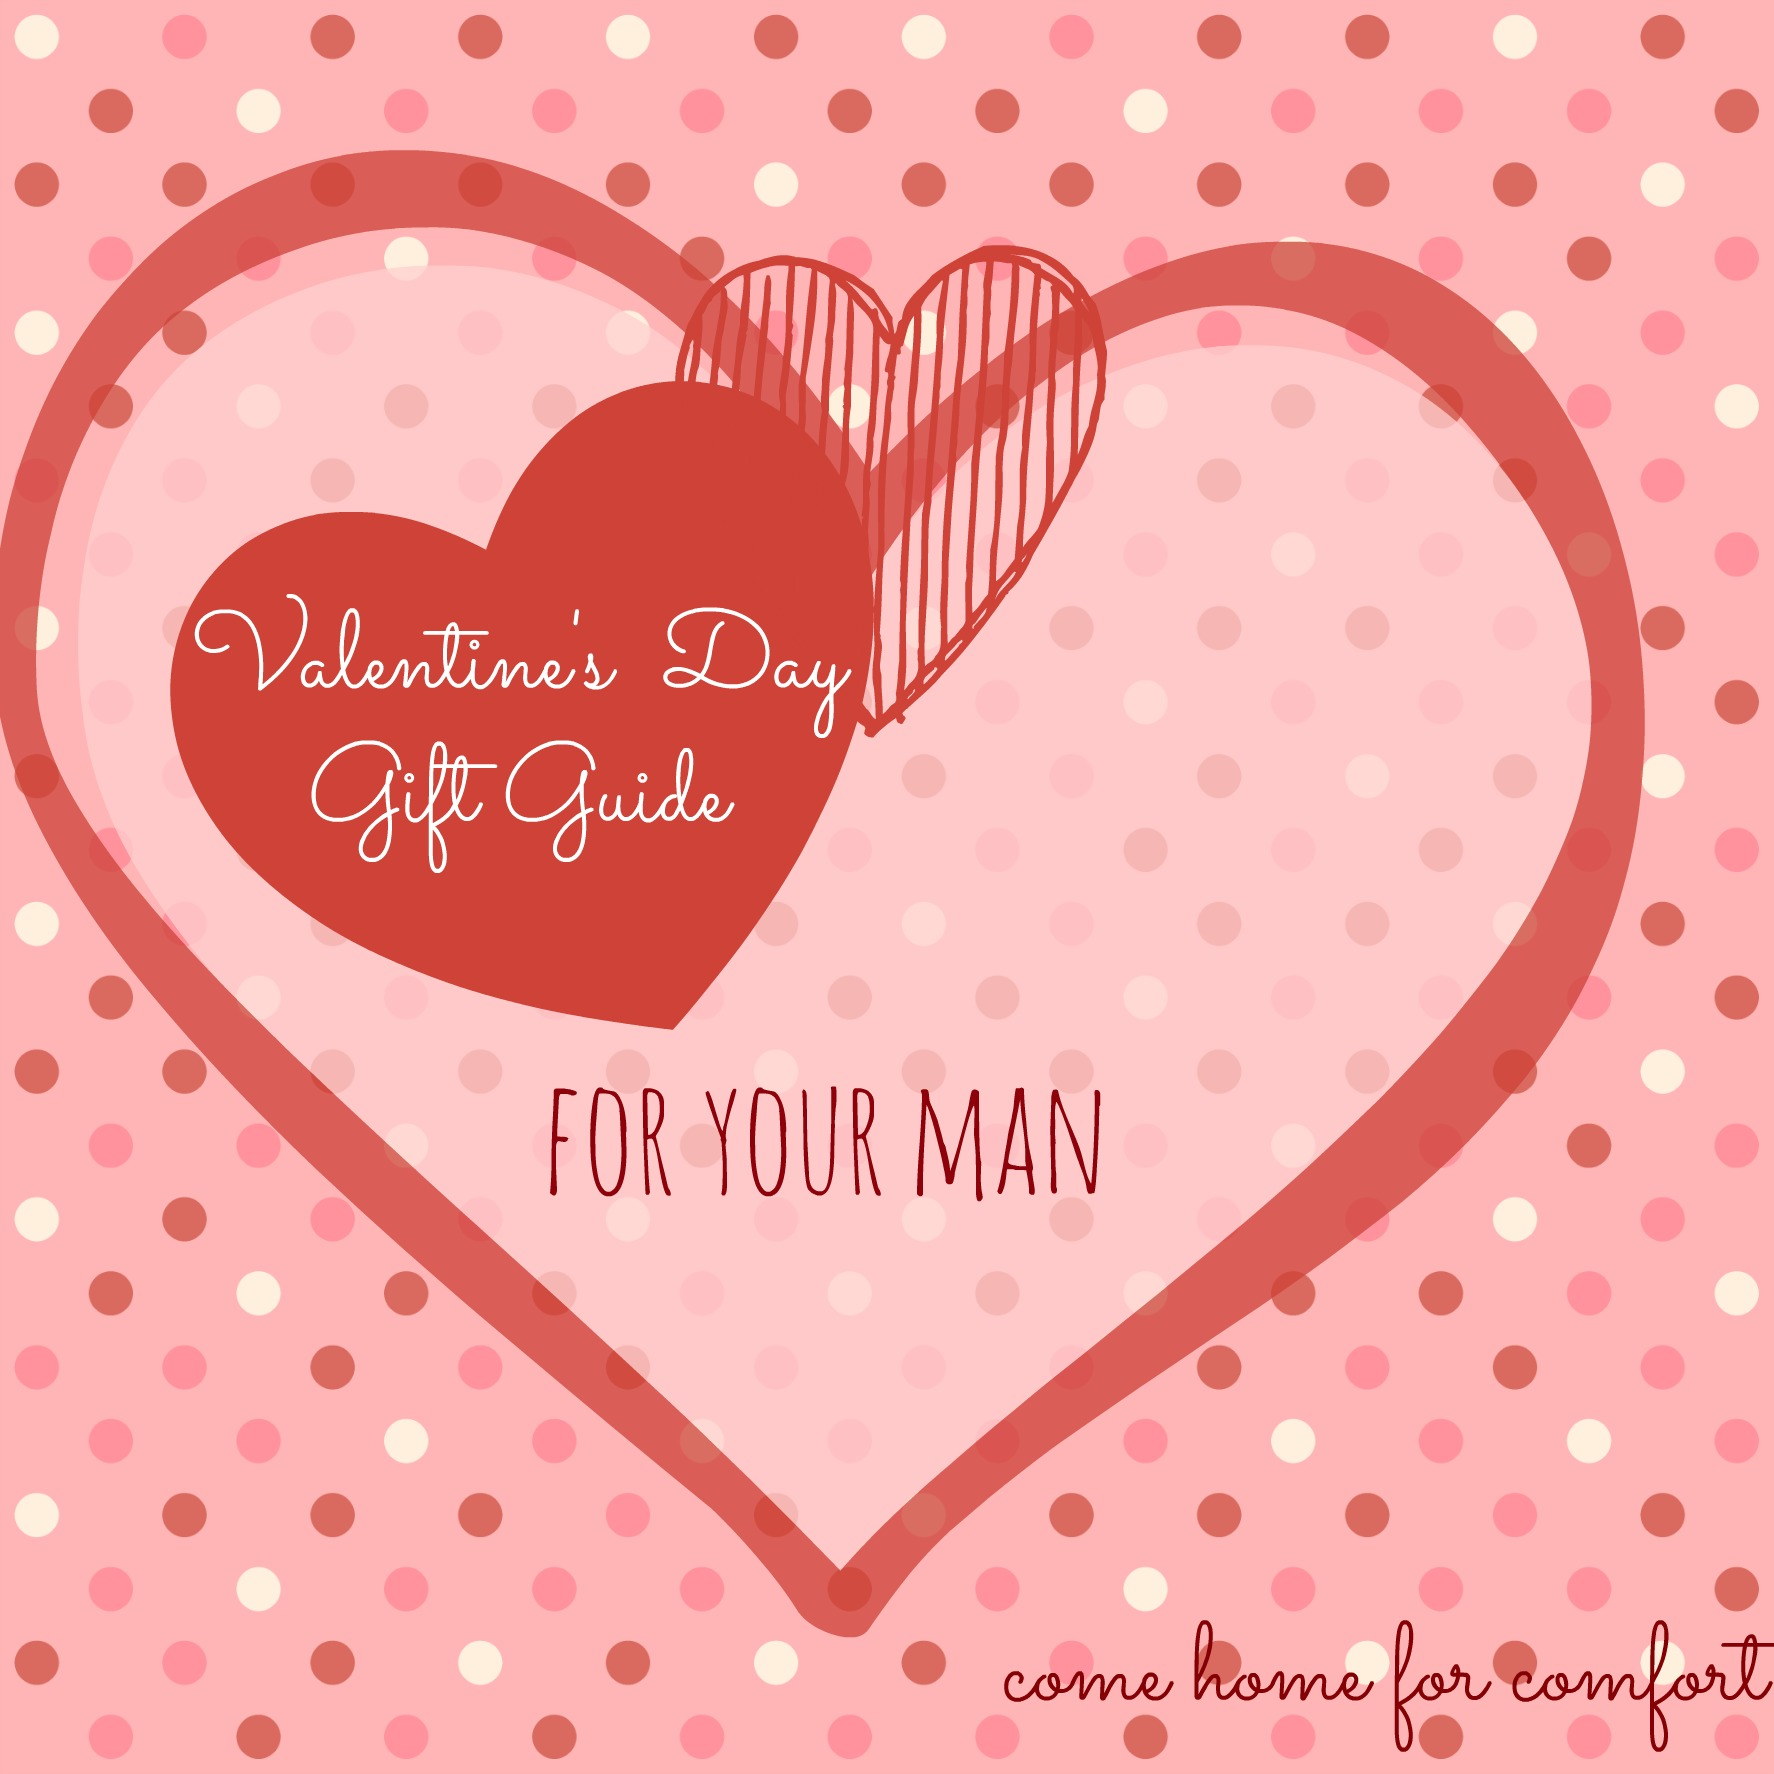 ... my ideas inspire you as you make Valentines Day special for your man